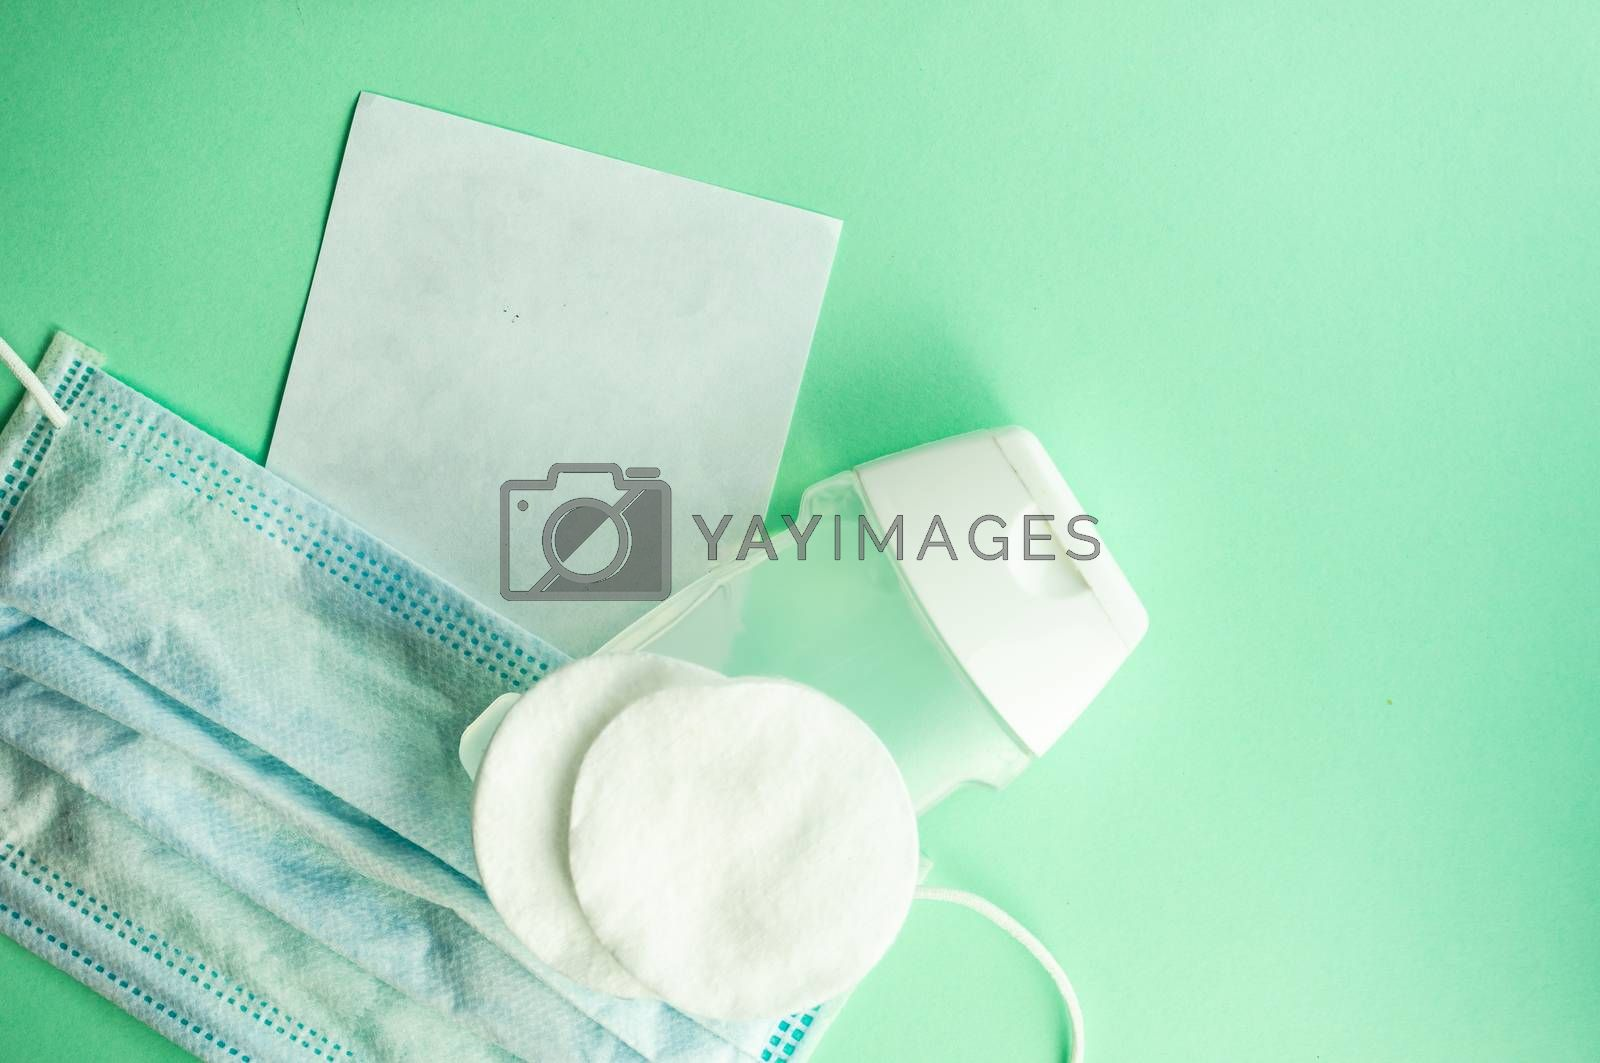 COVID-19 virus concept with face mask and note  on green pastel background with copy space